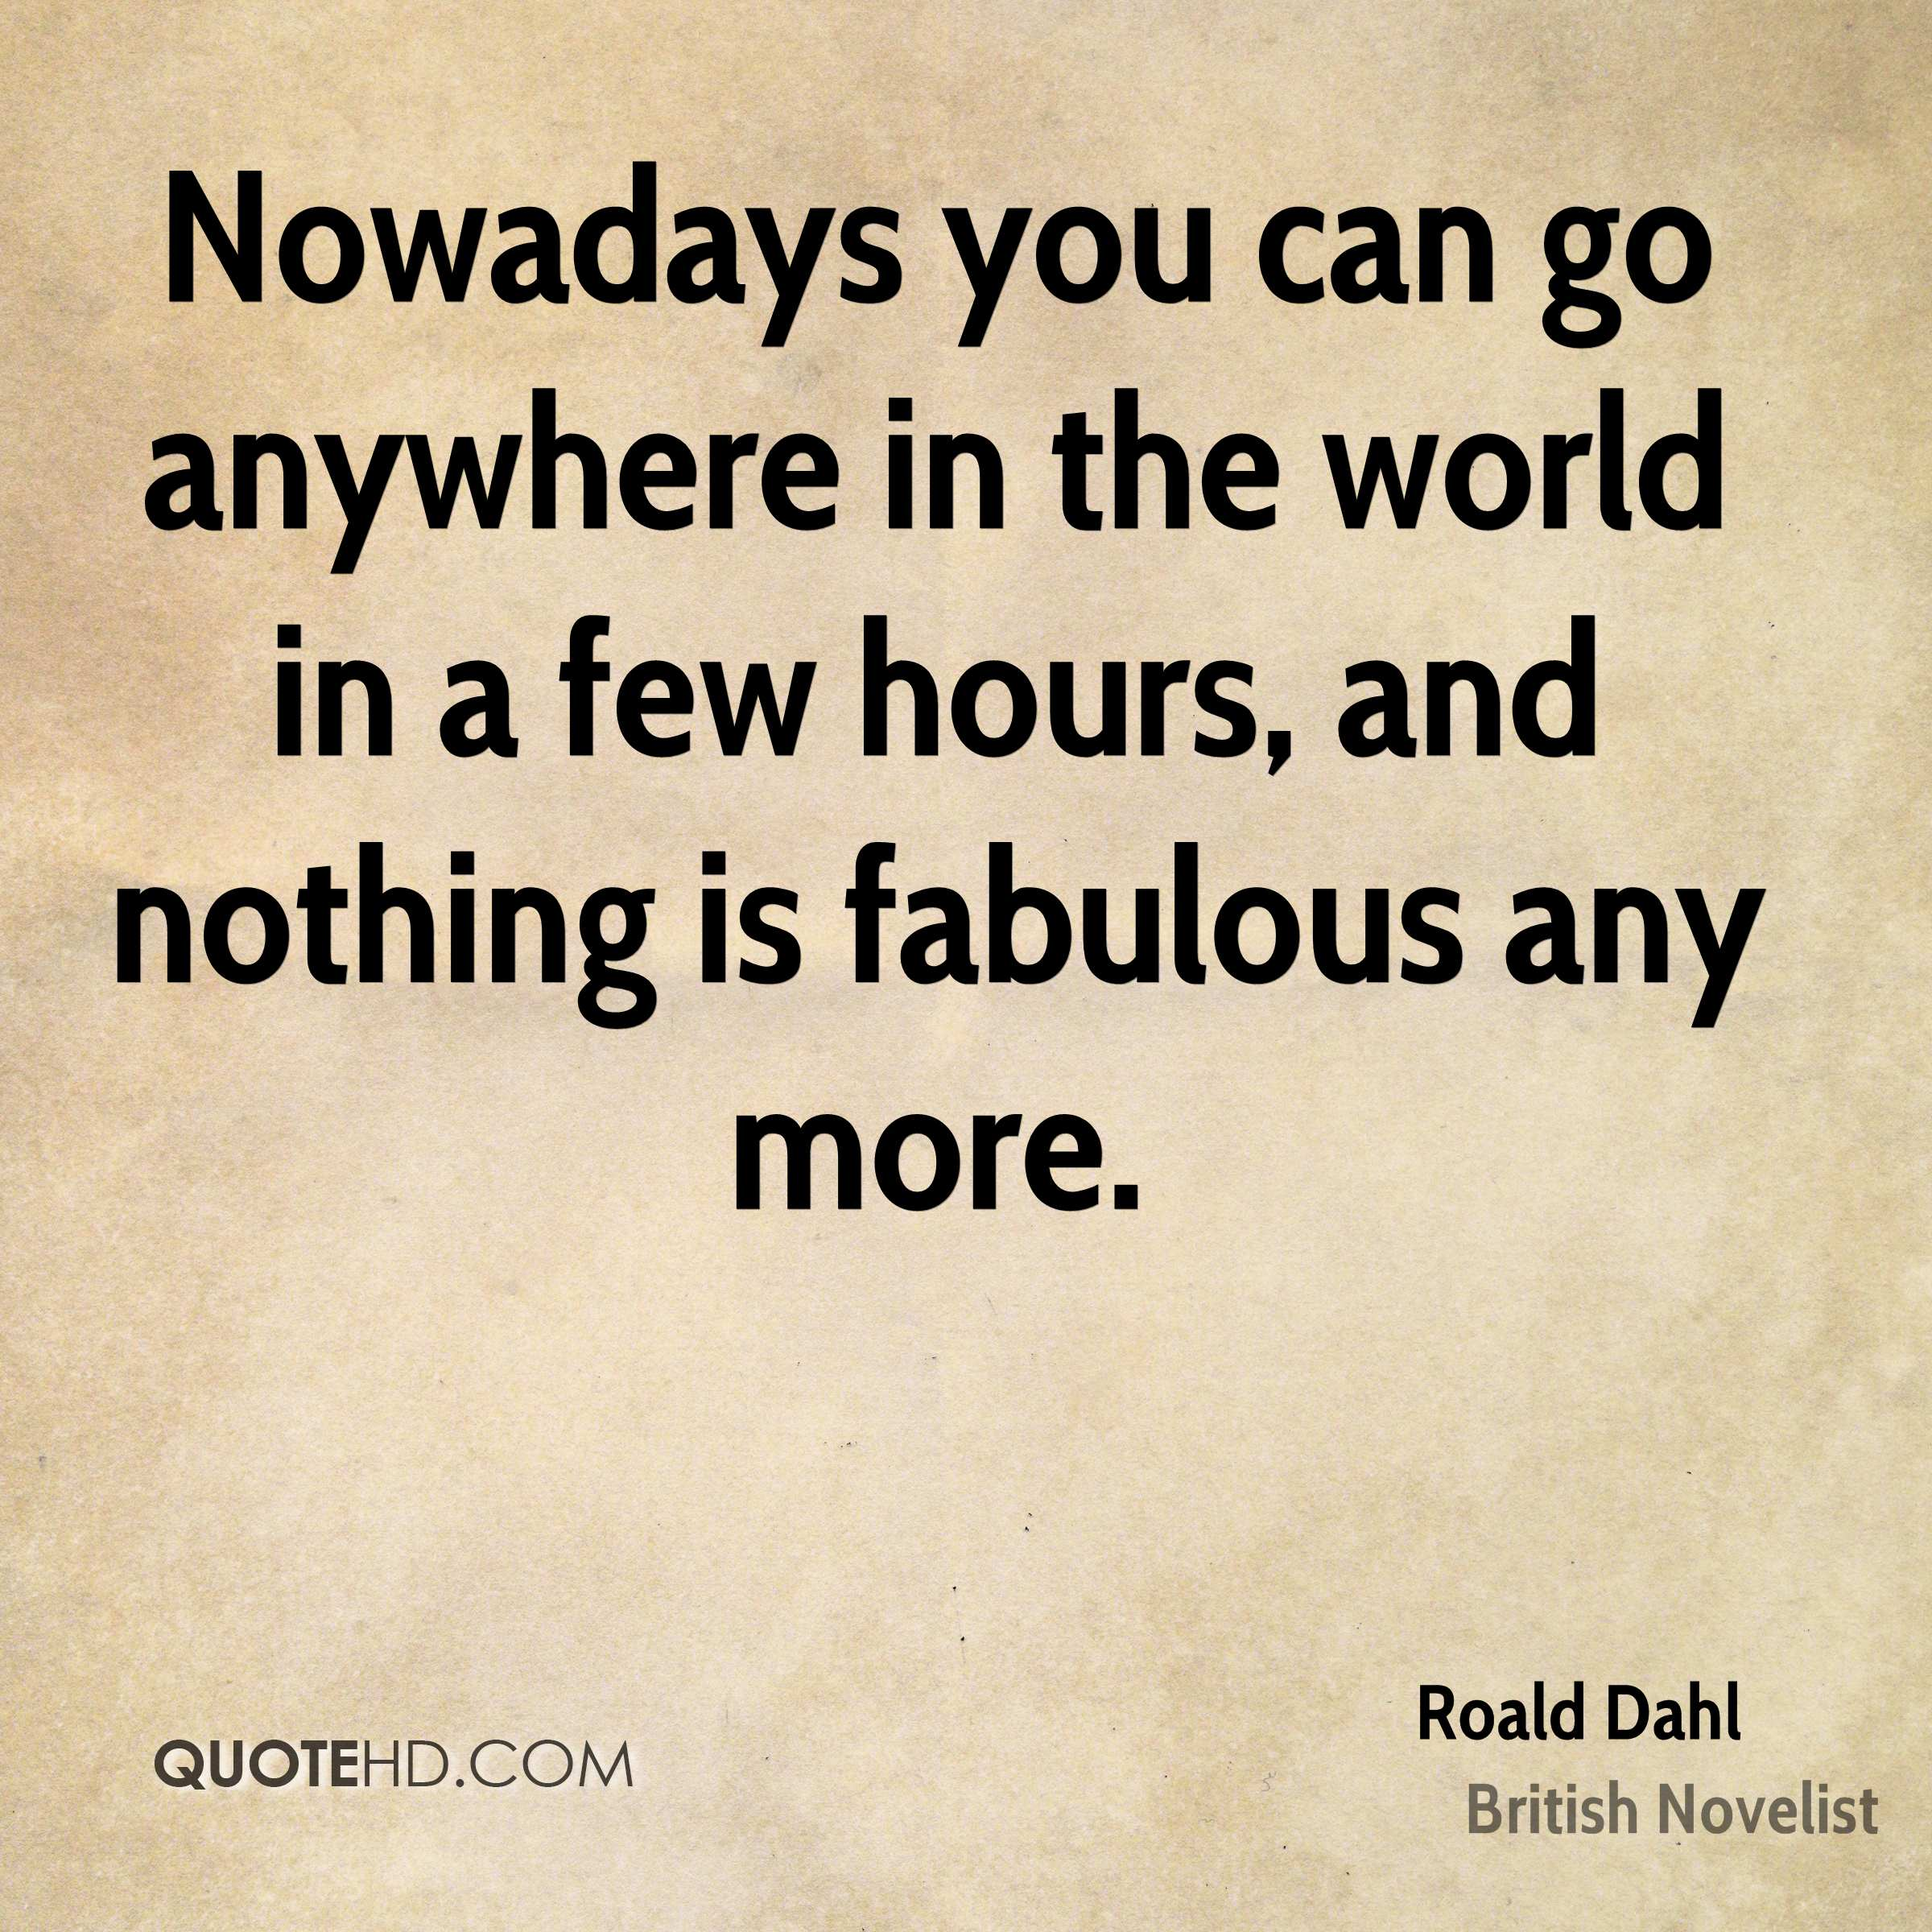 Nowadays you can go anywhere in the world in a few hours, and nothing is fabulous any more.